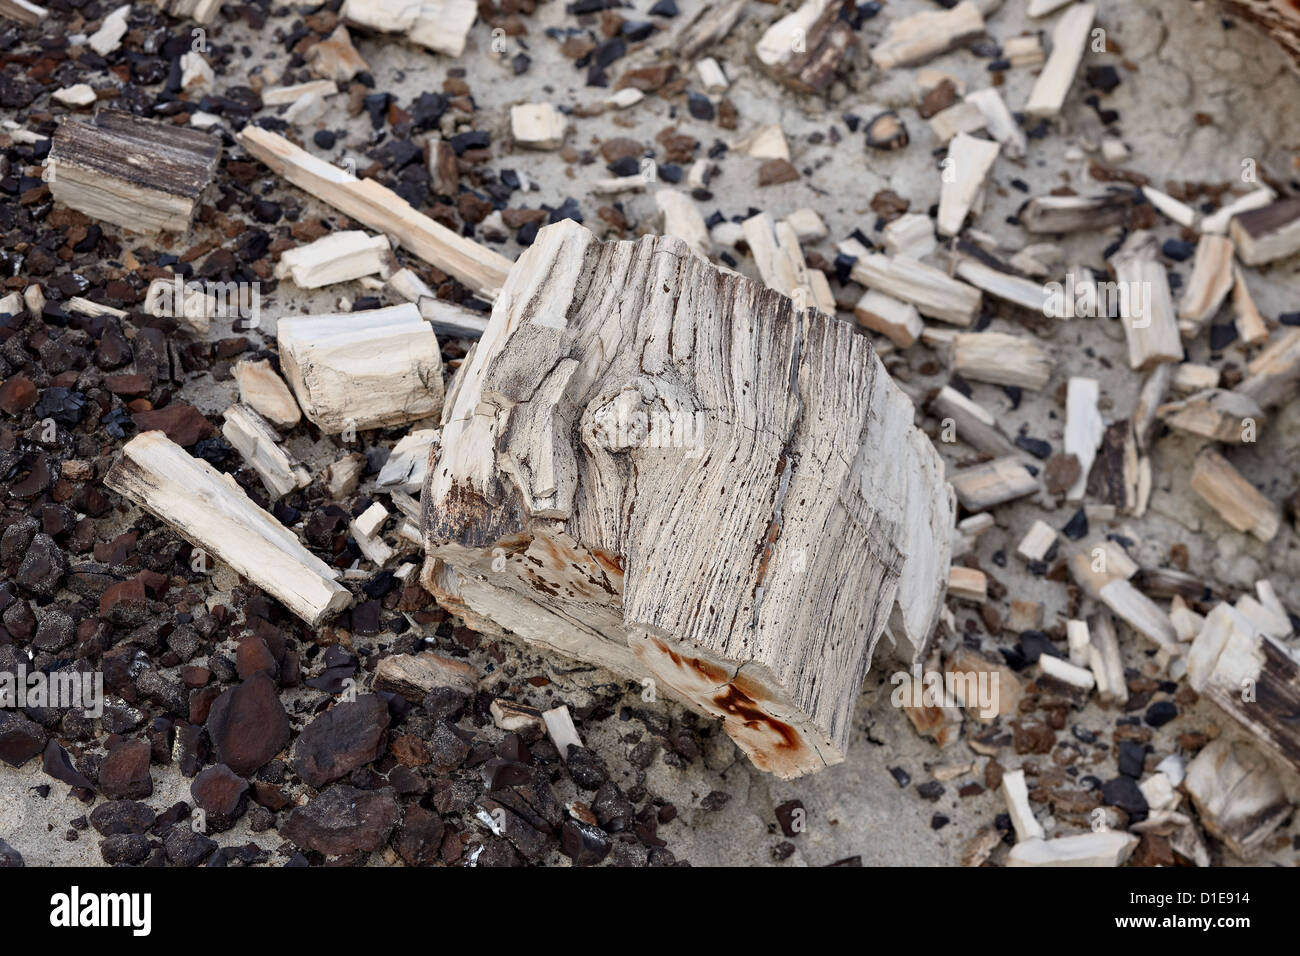 Petrified wood, San Juan Basin, New Mexico, United States of America, North America - Stock Image